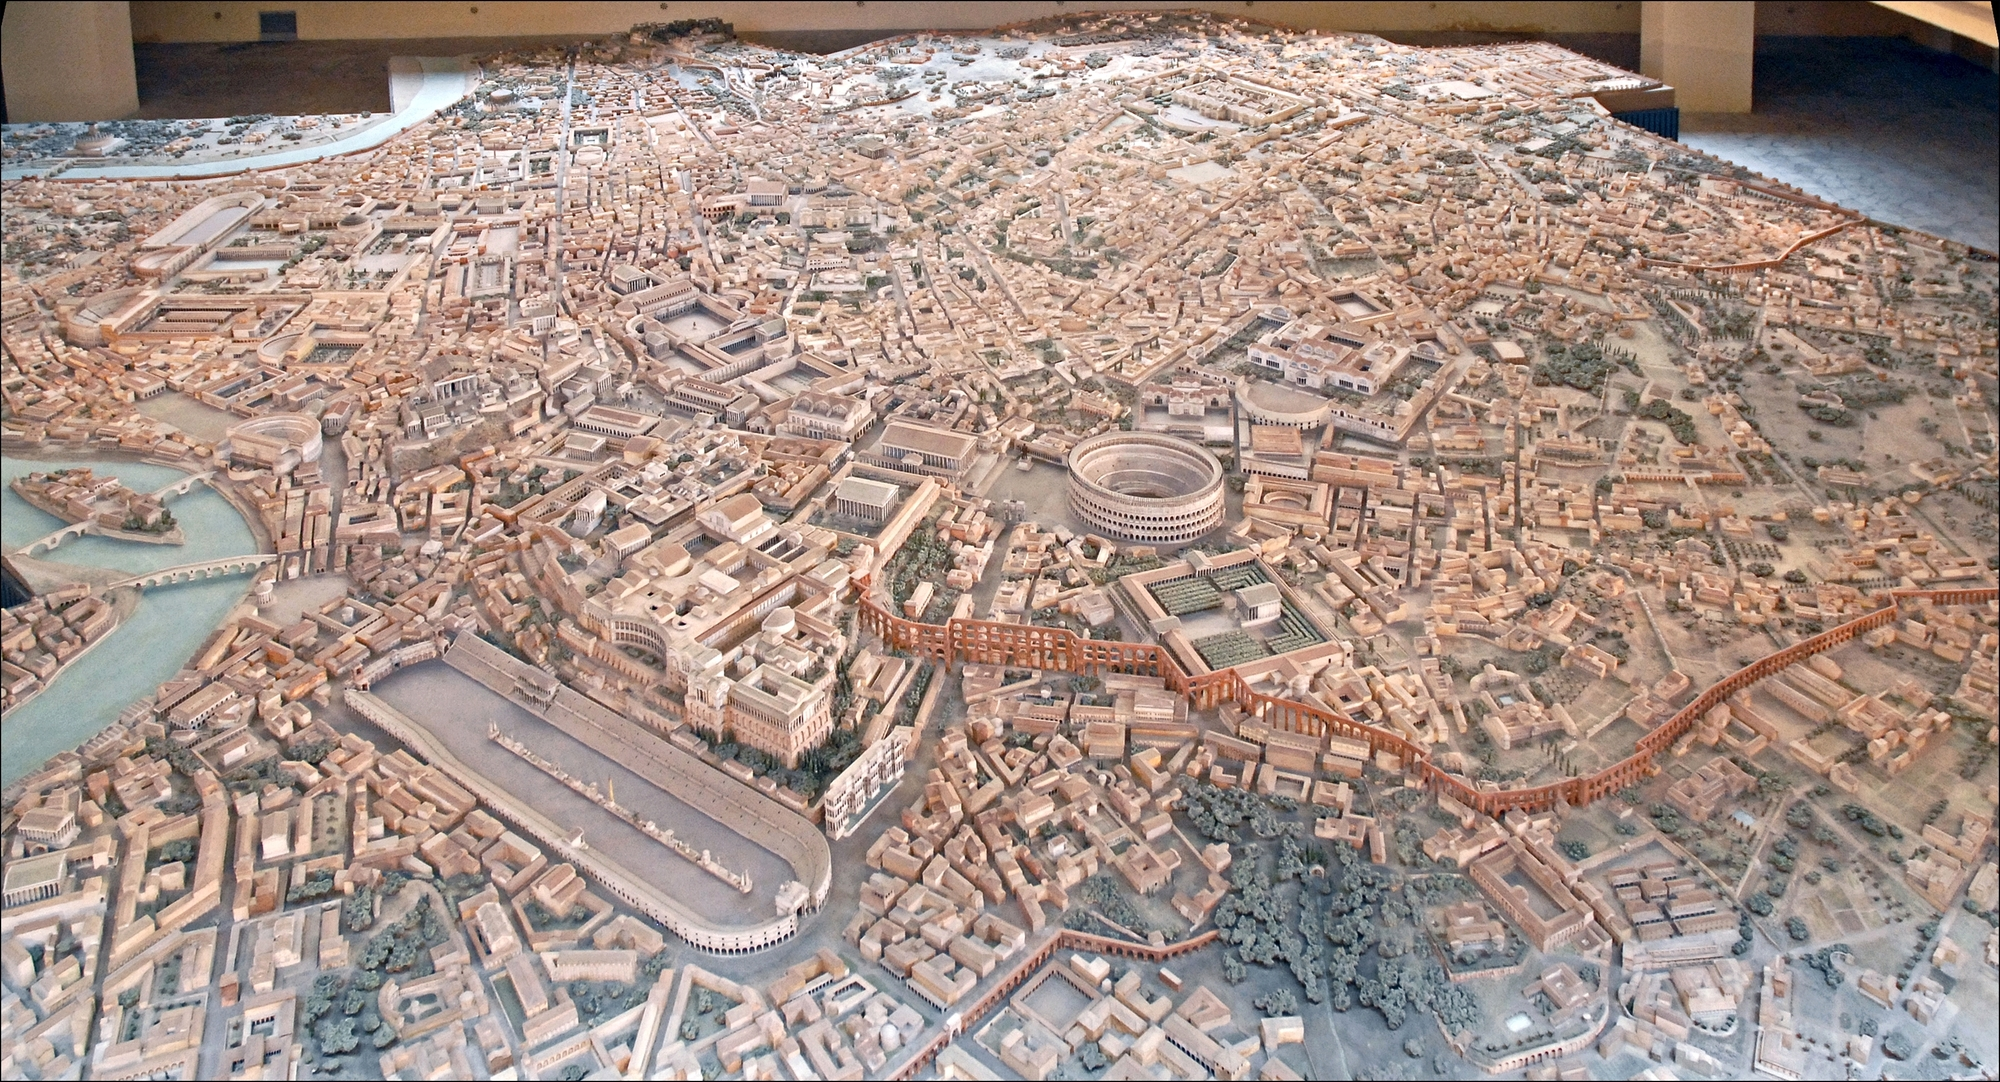 Explore This 1:250 Model of Ancient Rome Which Took 38 Years to ...